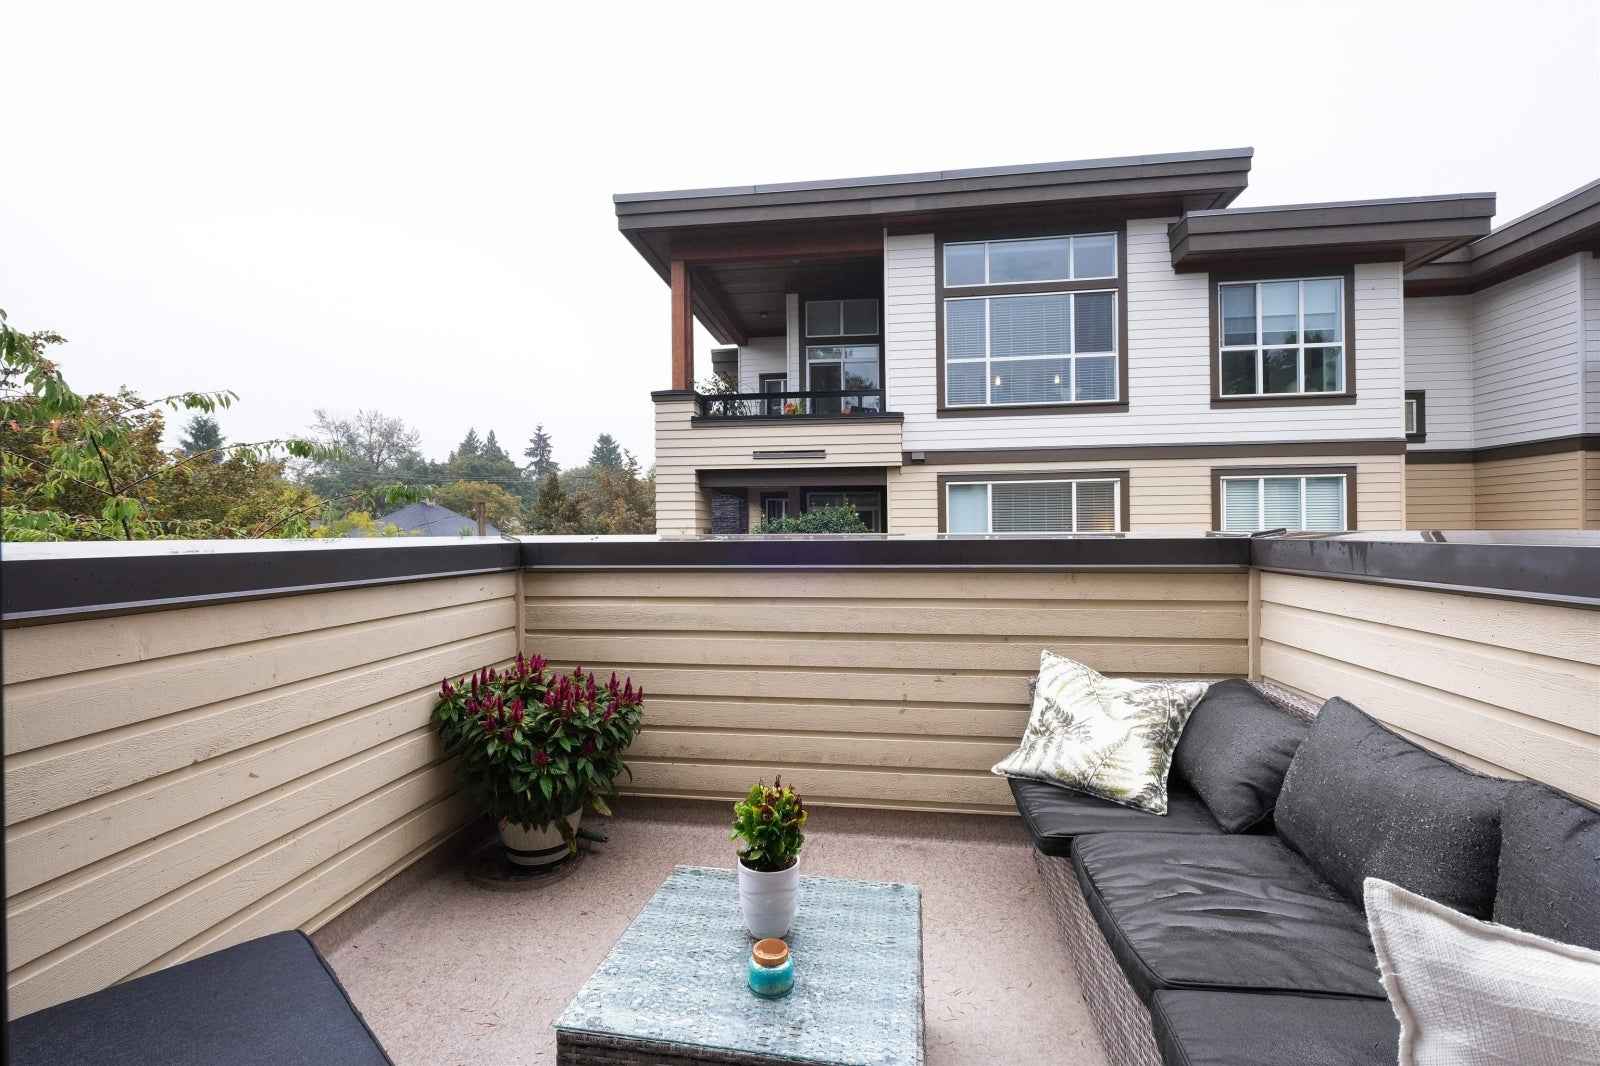 304 3275 MOUNTAIN HIGHWAY - Lynn Valley Apartment/Condo for sale, 2 Bedrooms (R2618420) #6